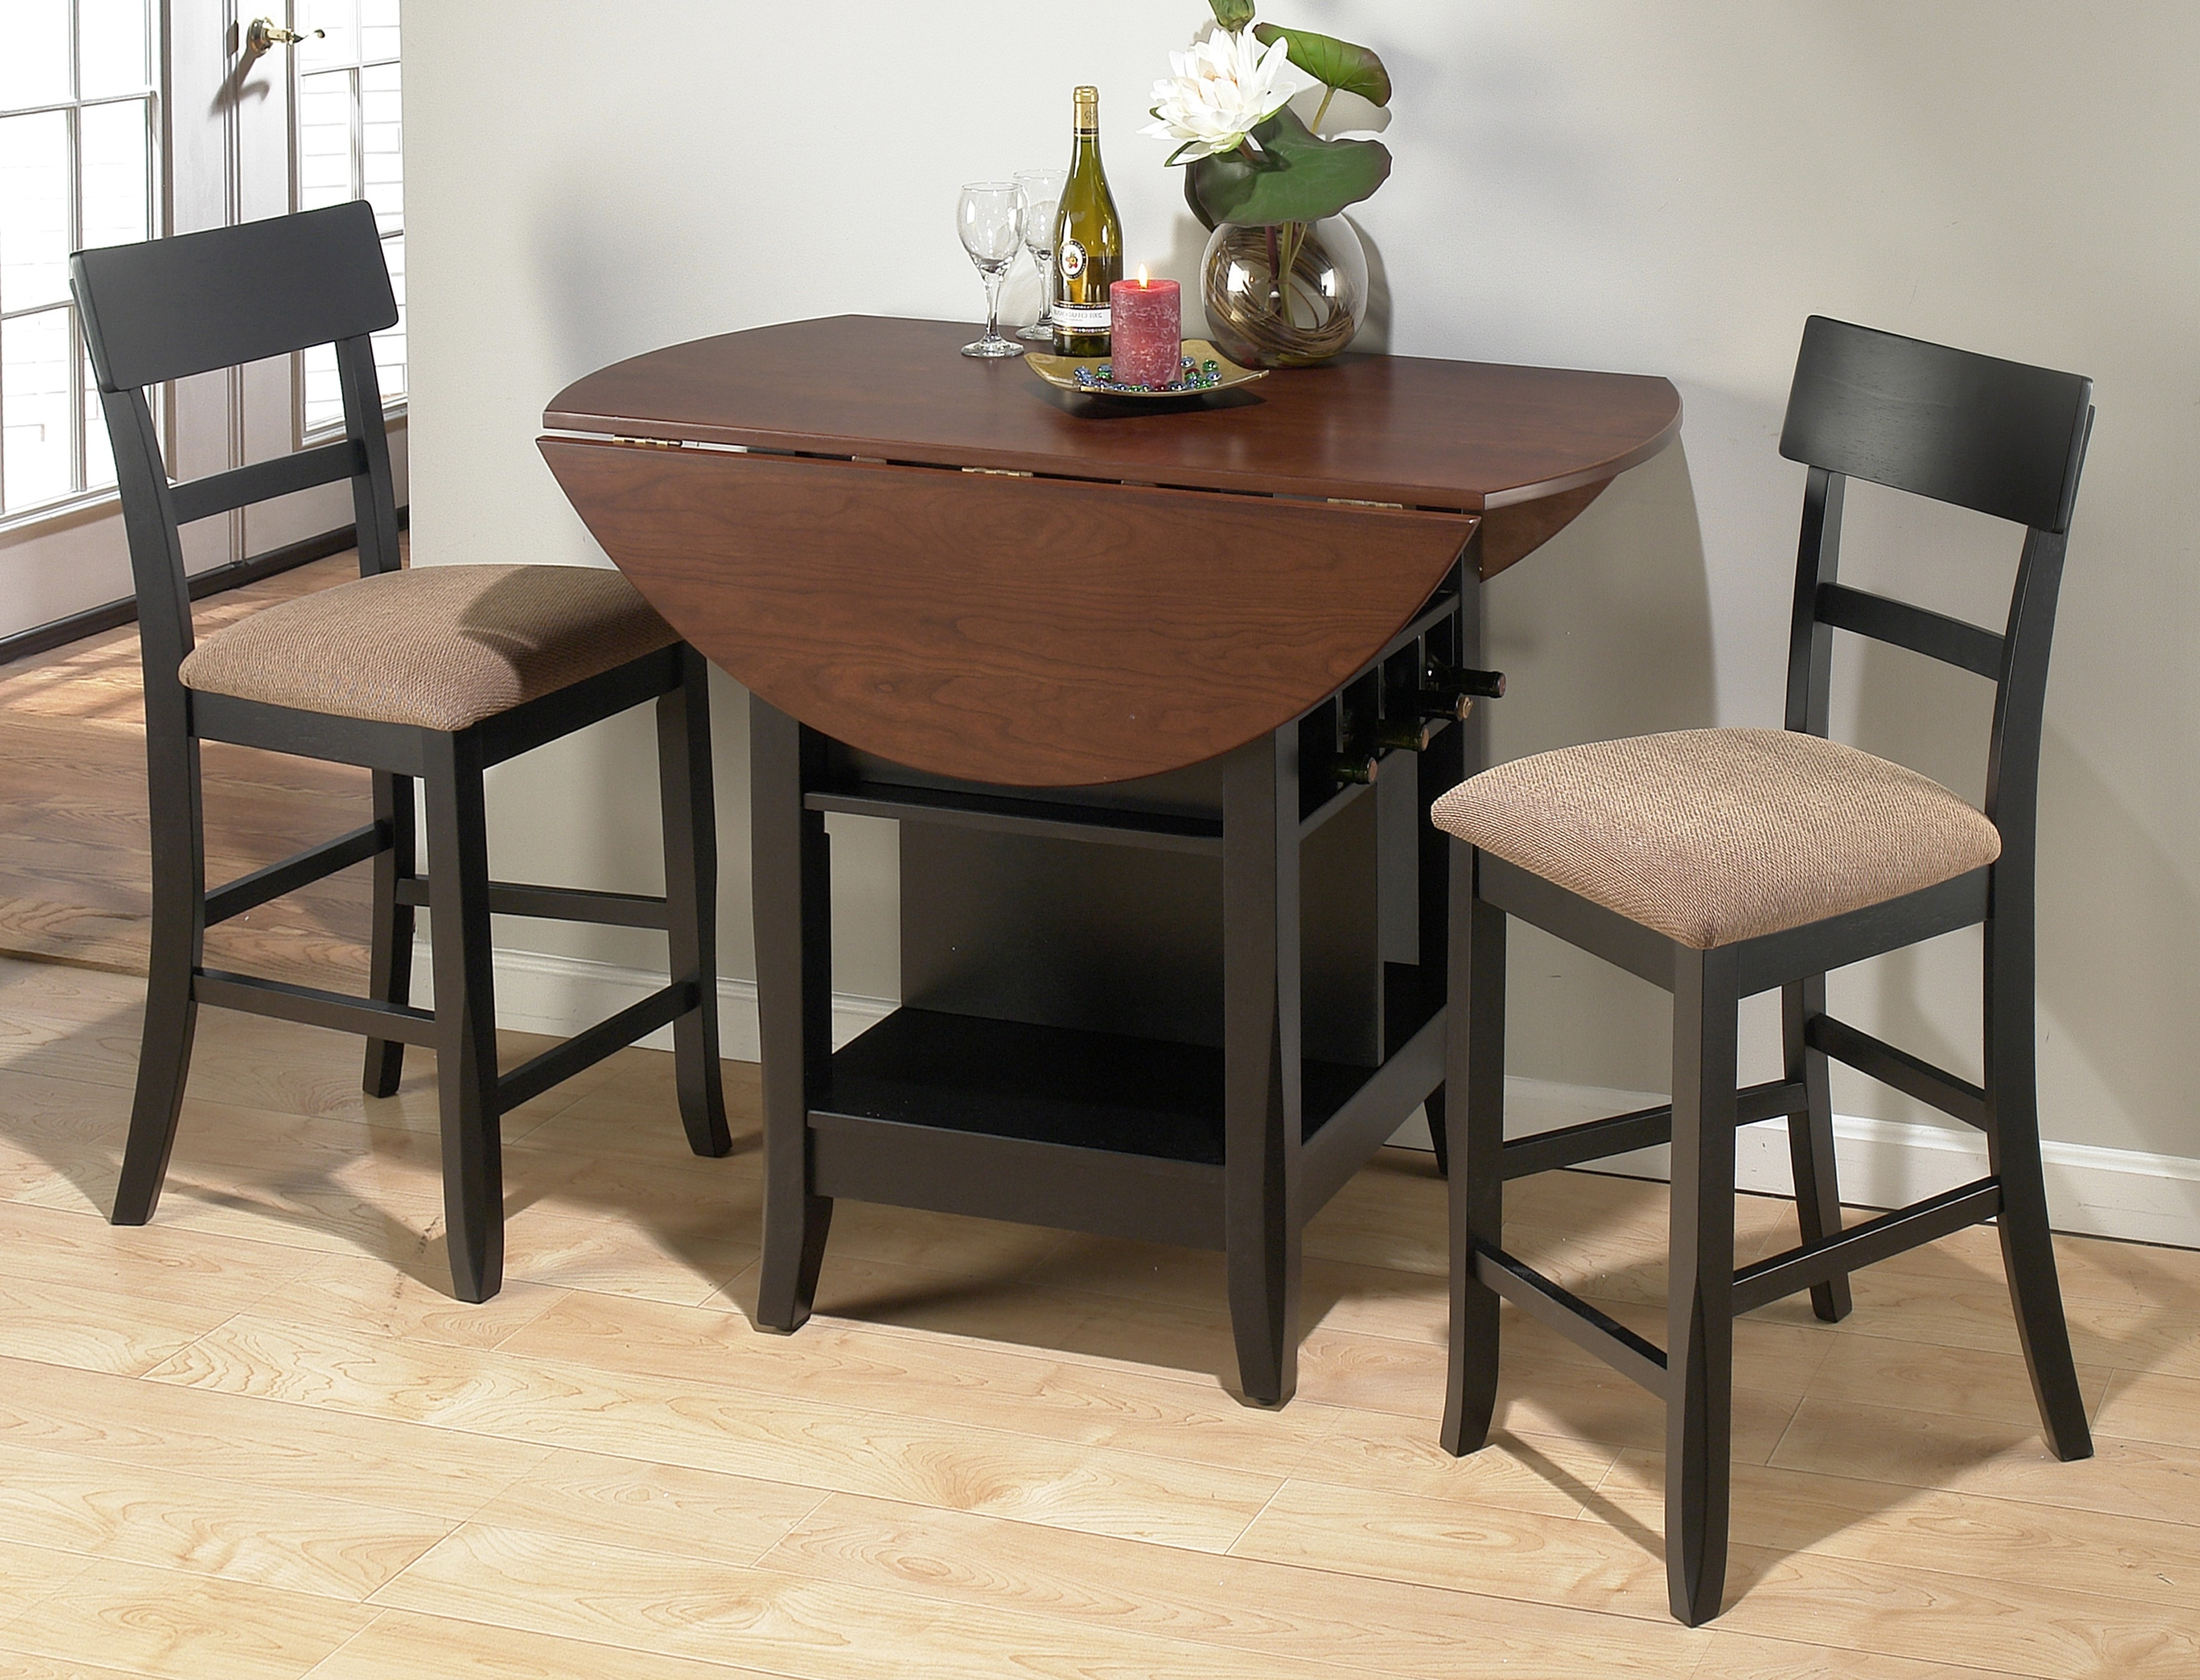 Dining Room Kitchen Table Sets For Small Areas Small Dining Table Within 2017 Small Dining Tables And Bench Sets (View 9 of 25)